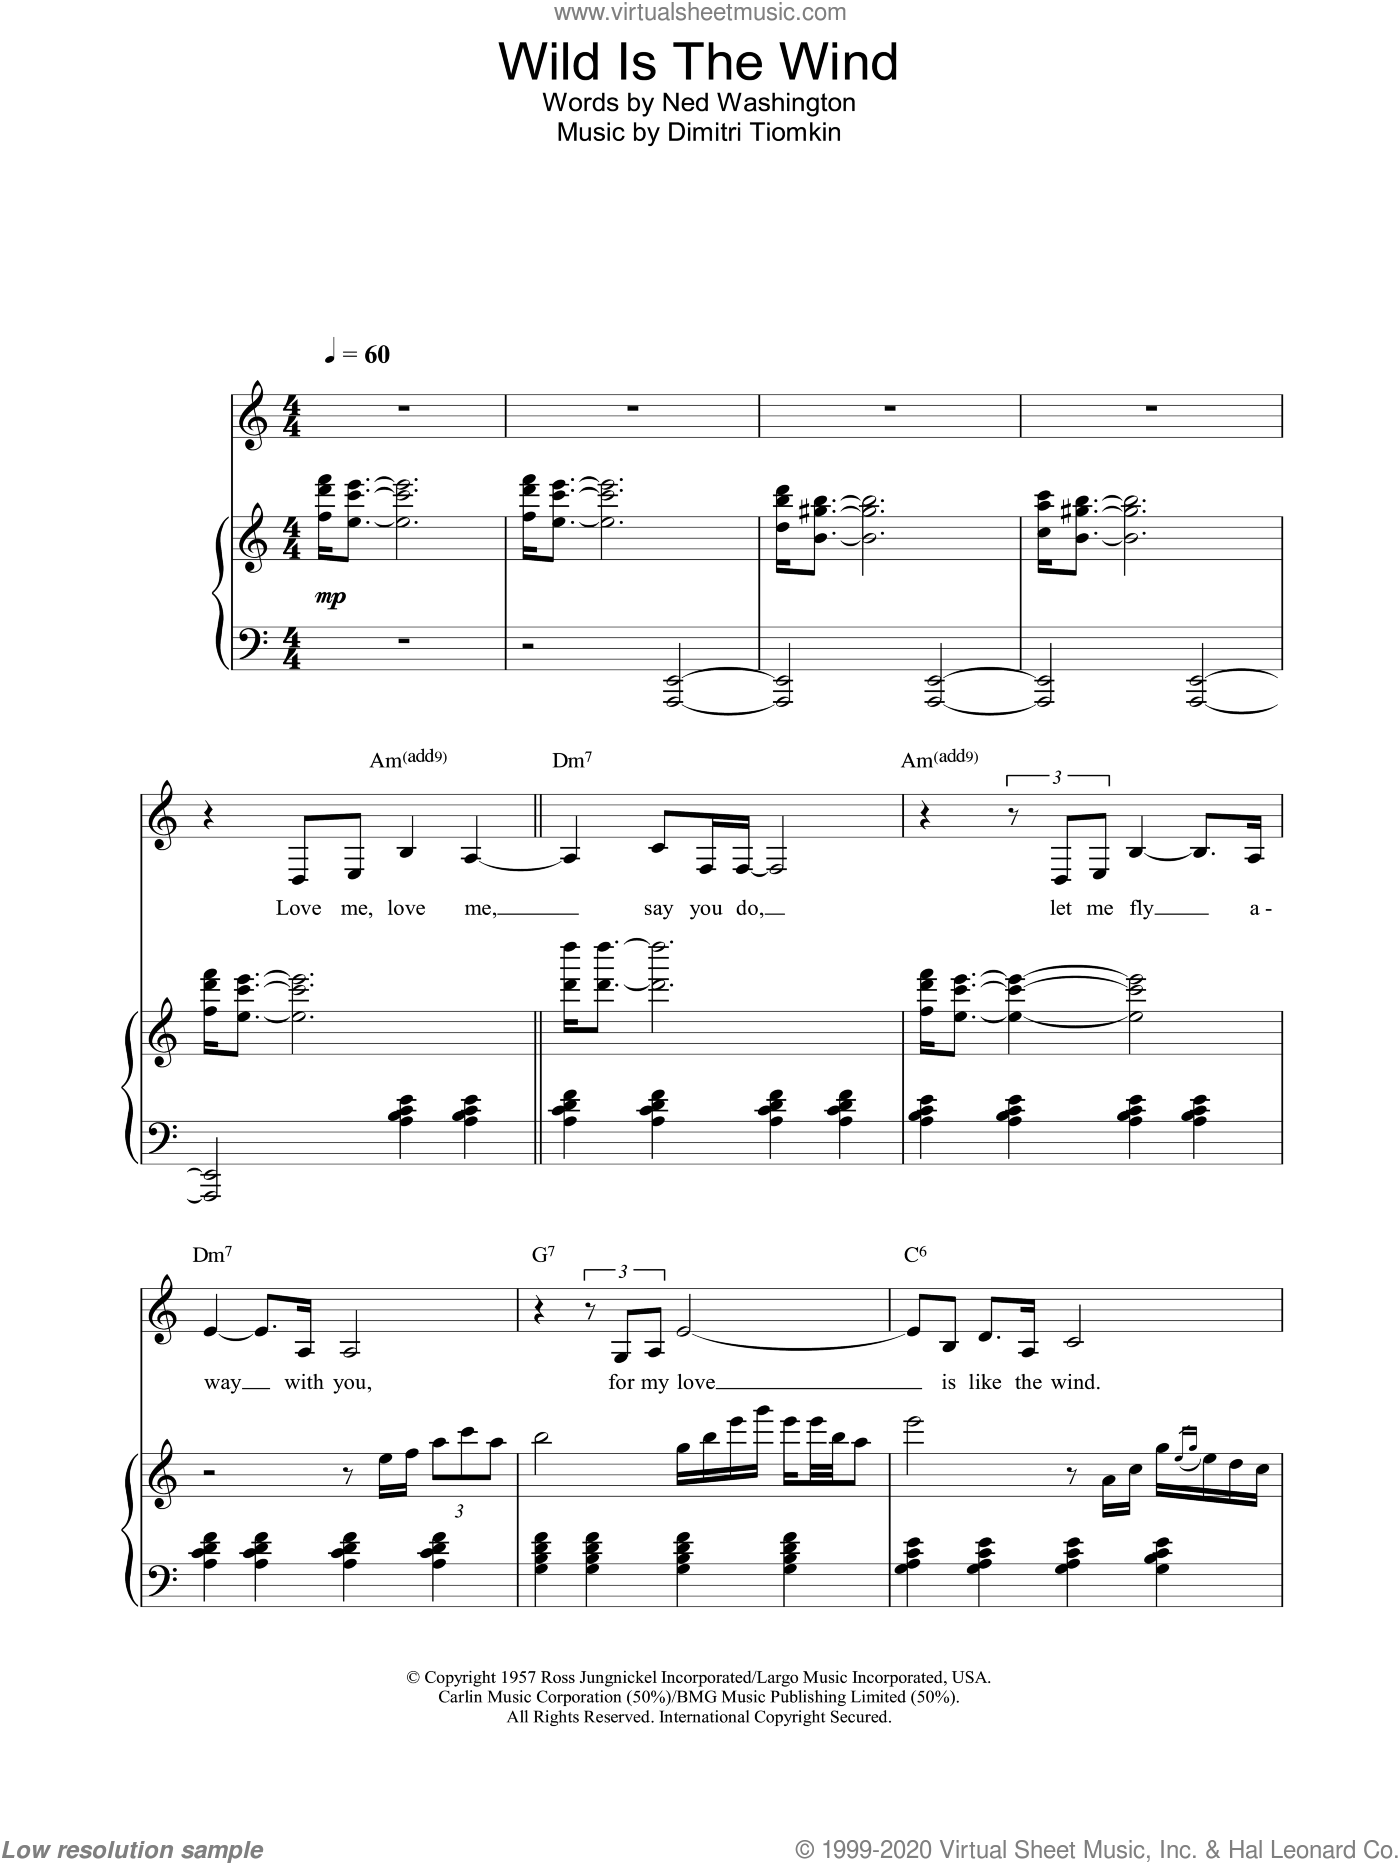 Wild Is The Wind sheet music for voice, piano or guitar by Nina Simone, intermediate skill level